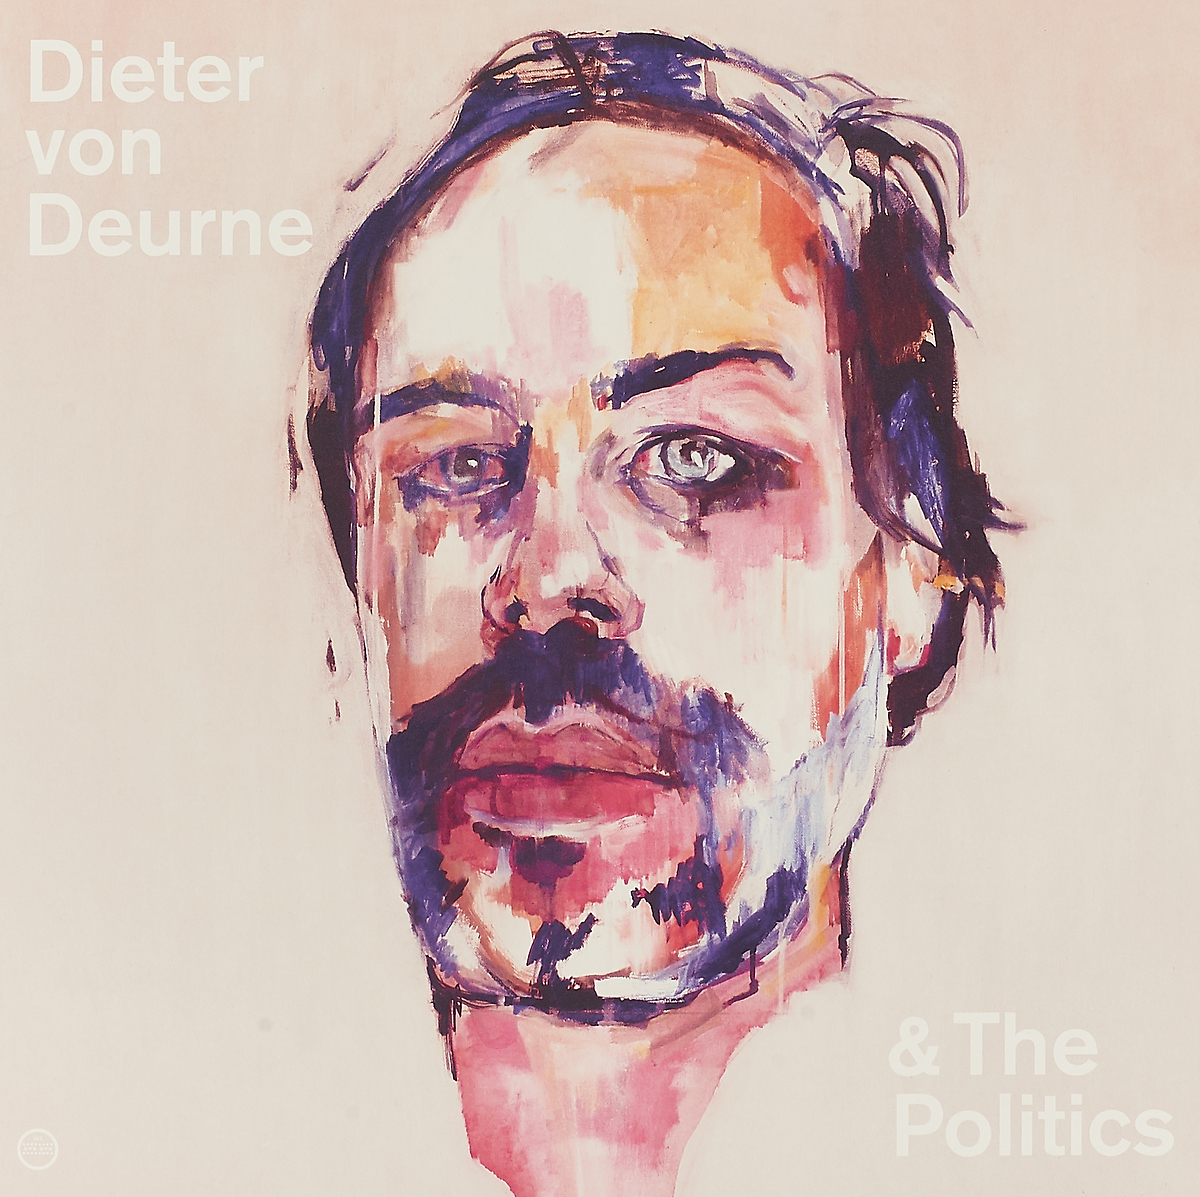 Dieter Von Deurne And The Politics Dieter Von Deurne And The Politics. Dieter Von Deurne And The Politics (LP) may politics